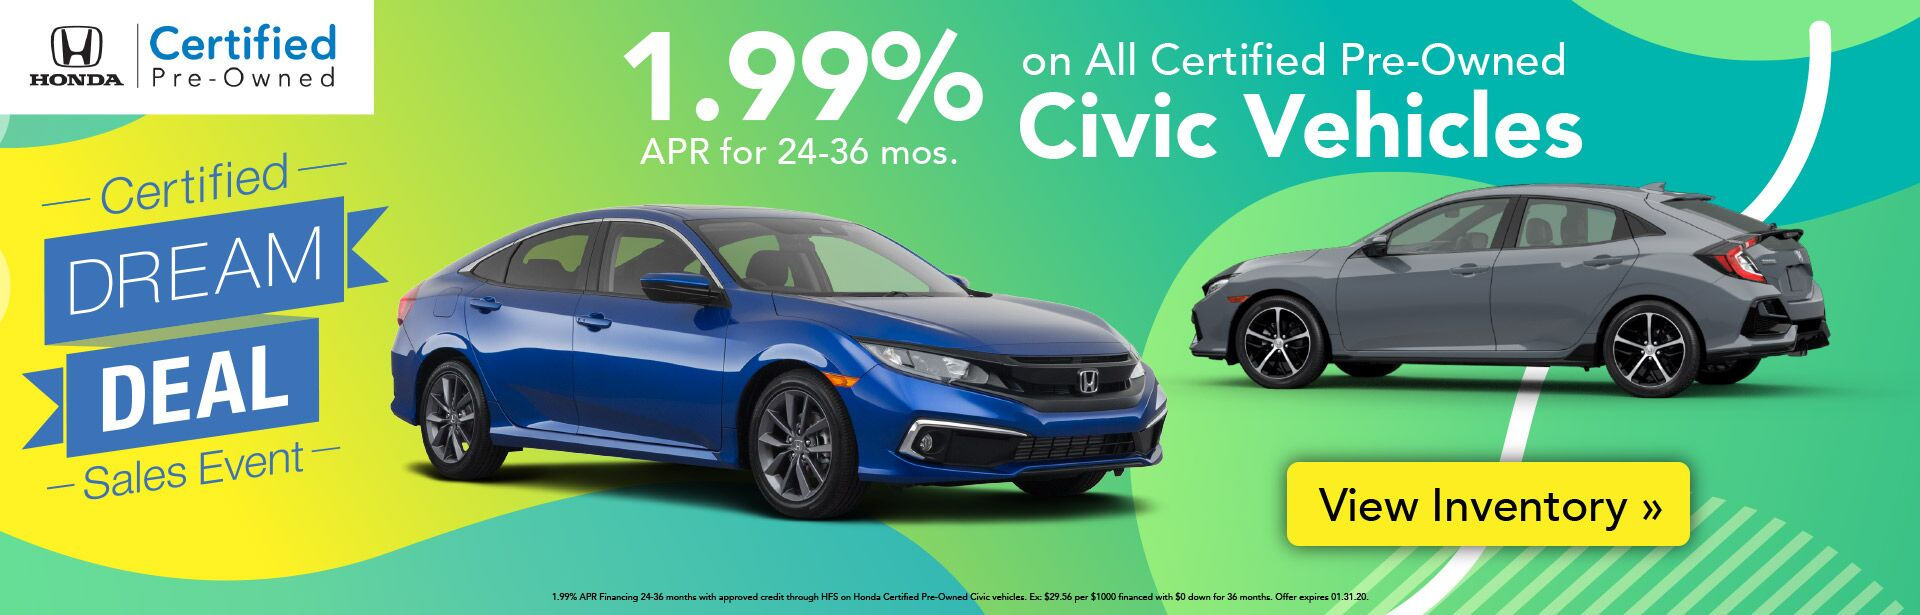 Certified Pre-Owned Civic